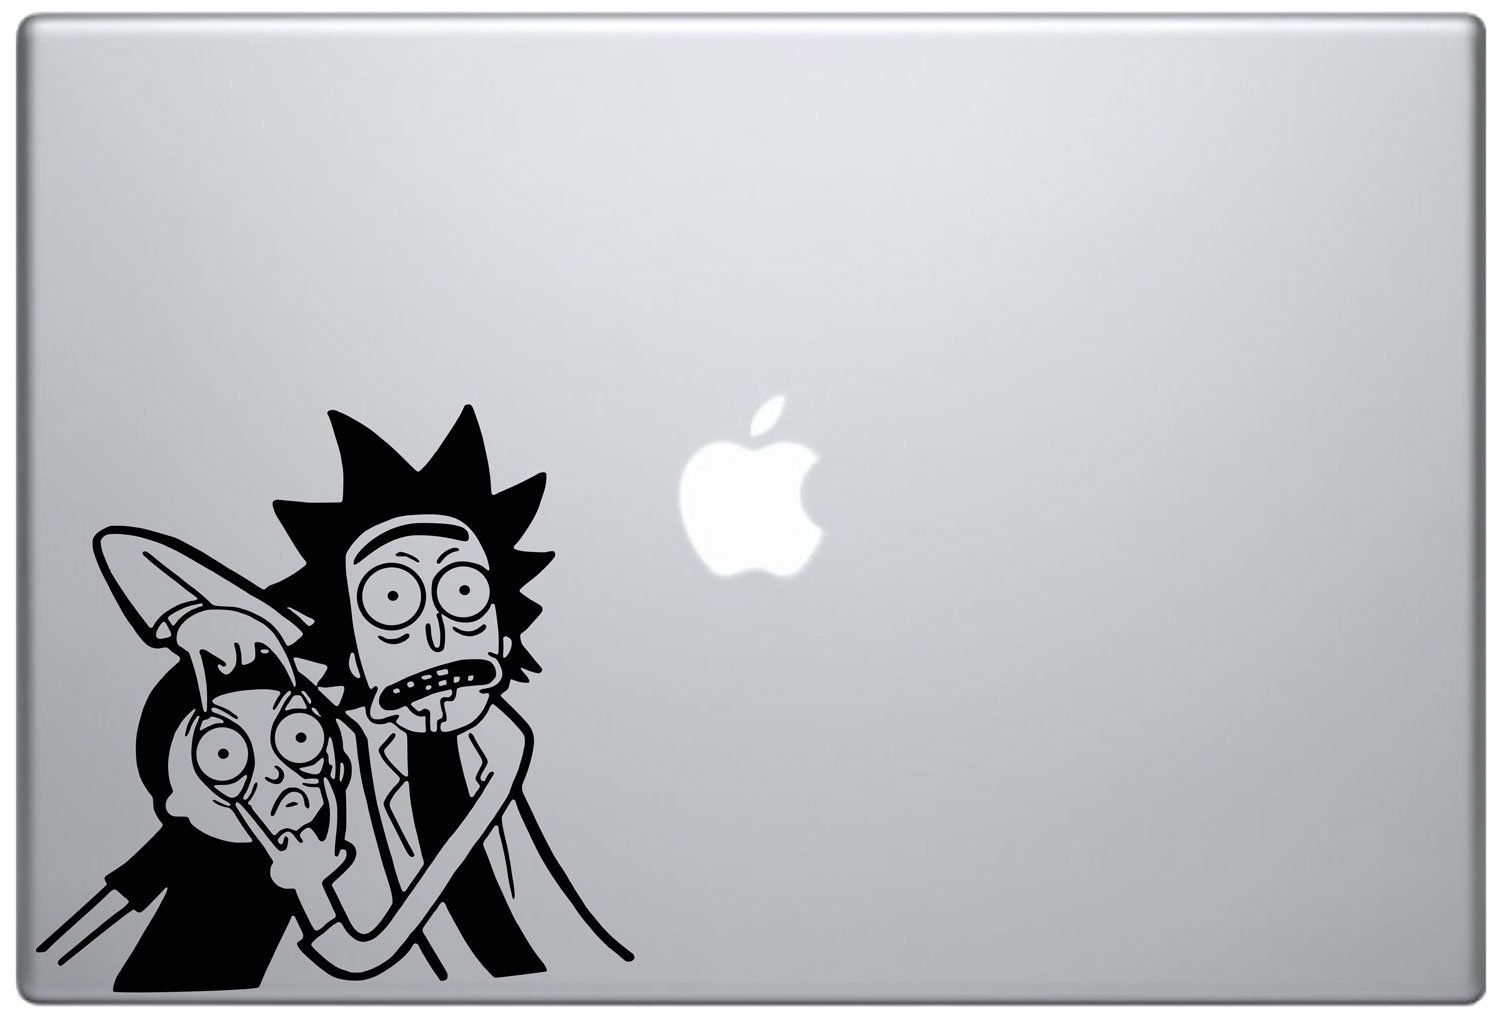 Rick and Morty Authentic Vinyl Sticker - Mac - iPhone - PC - Car by Crivean